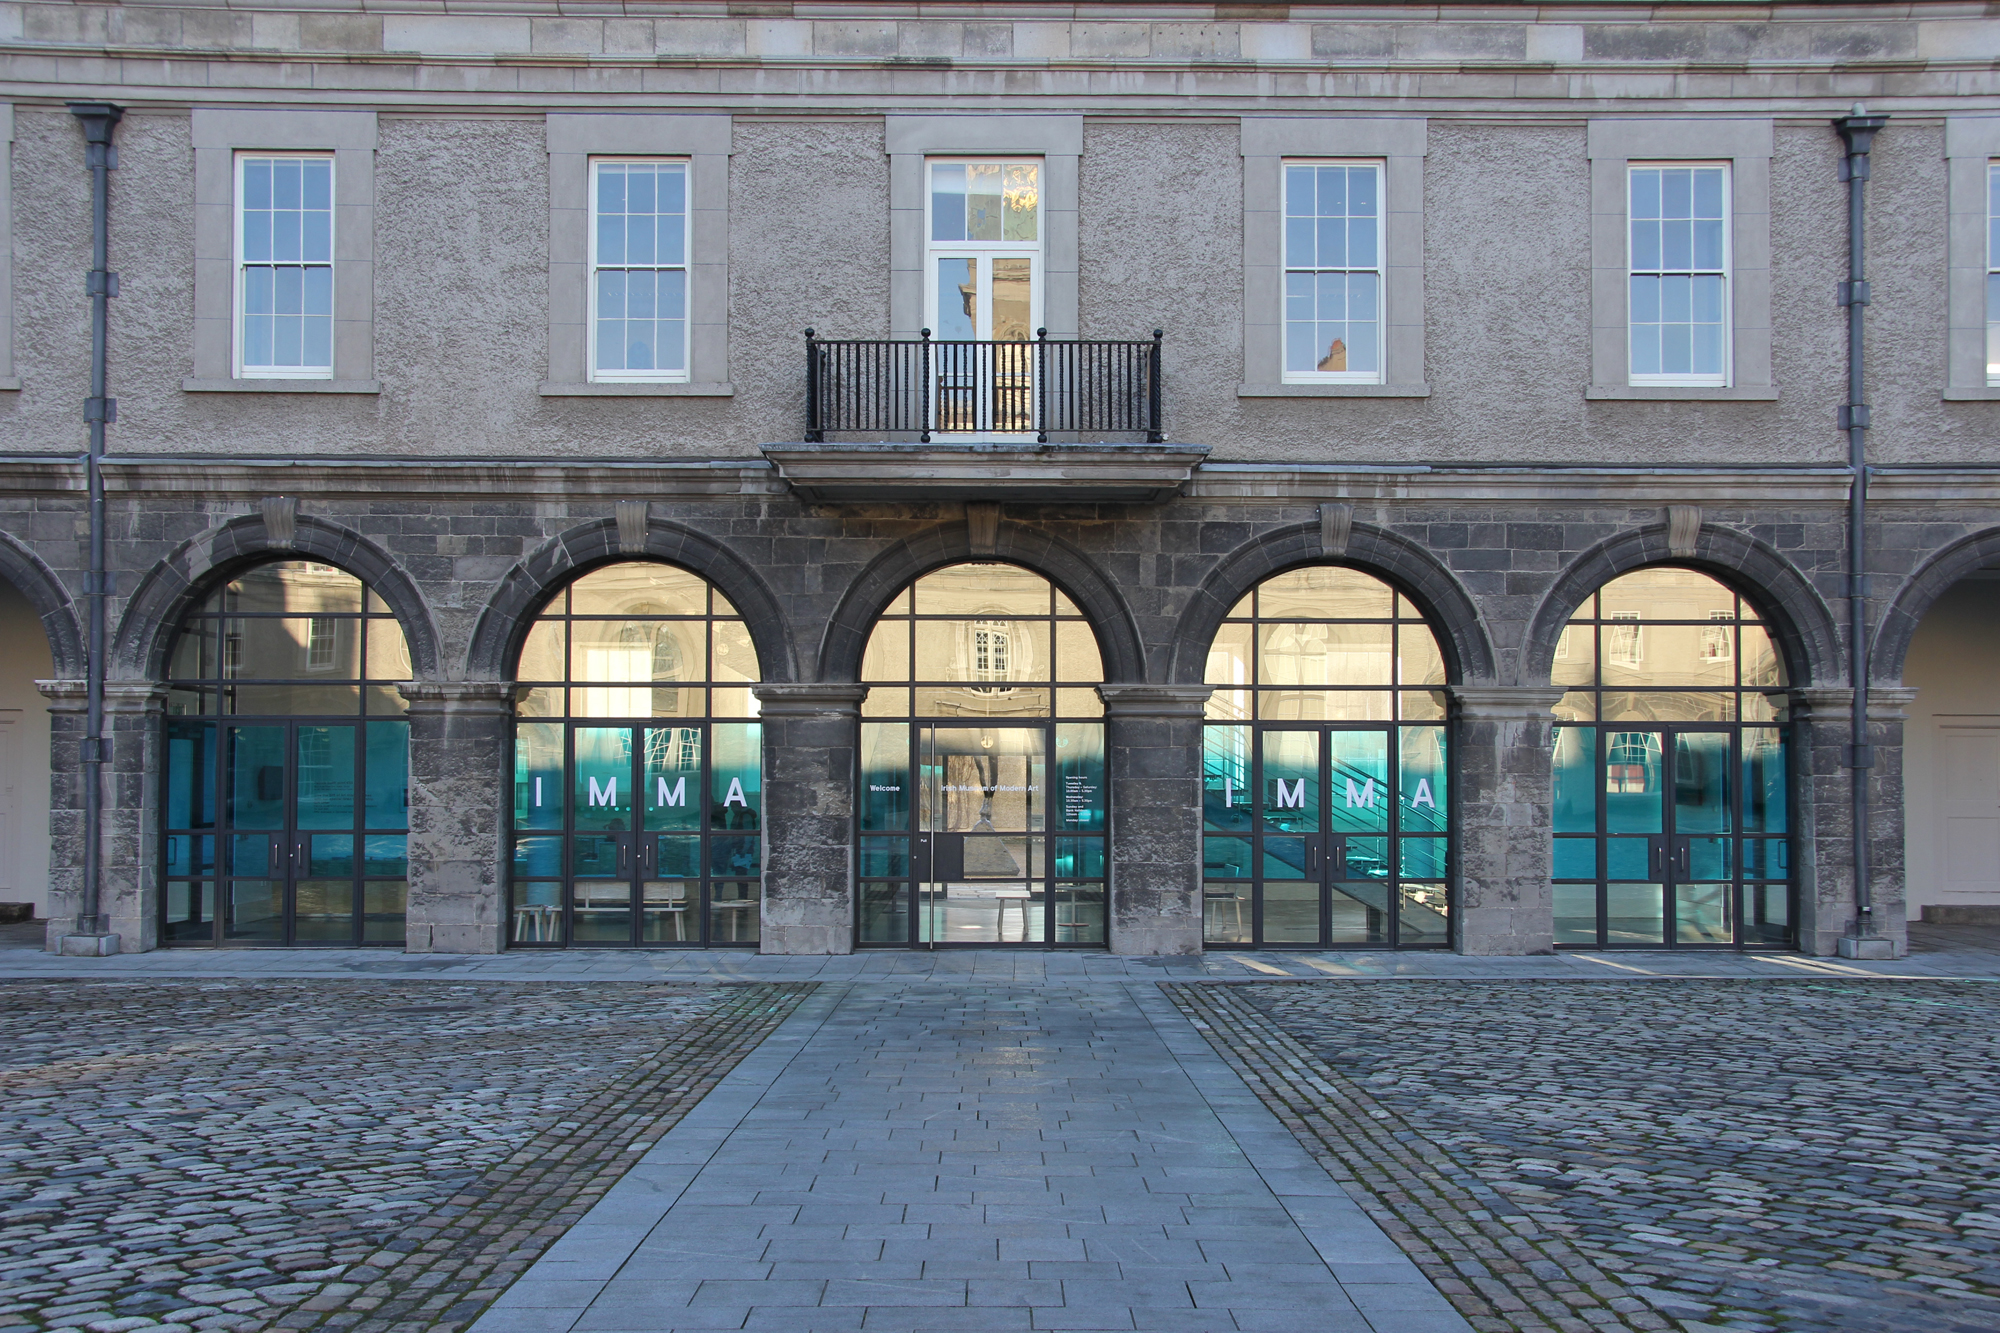 Cover image: Irish Museum of Modern Art wayfinding system and associated signage (2013)